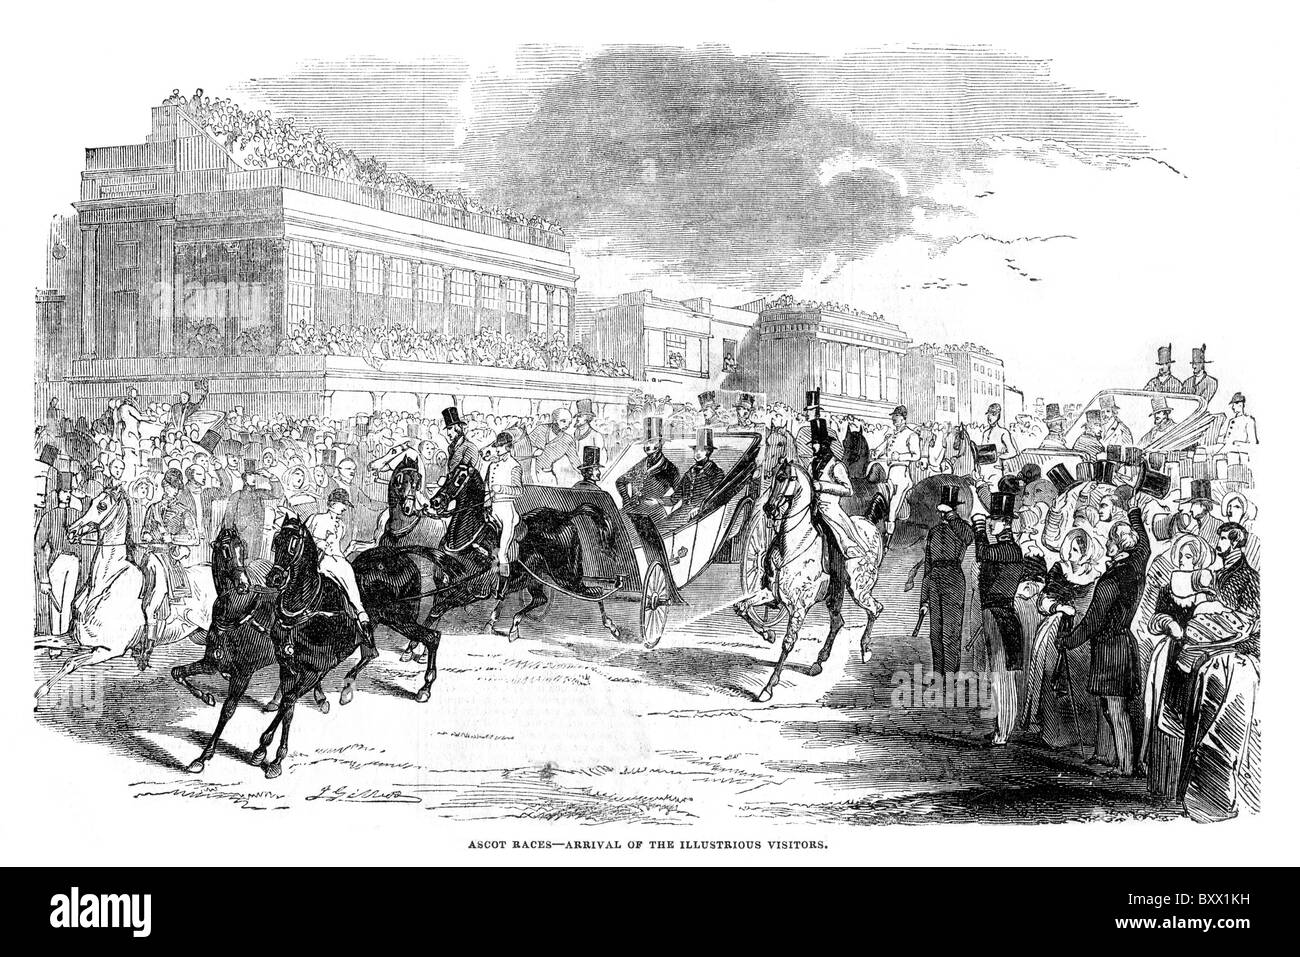 Ascot Races; The Arrival of Illustrious Visitors; 19th century; Black and White Illustration; - Stock Image